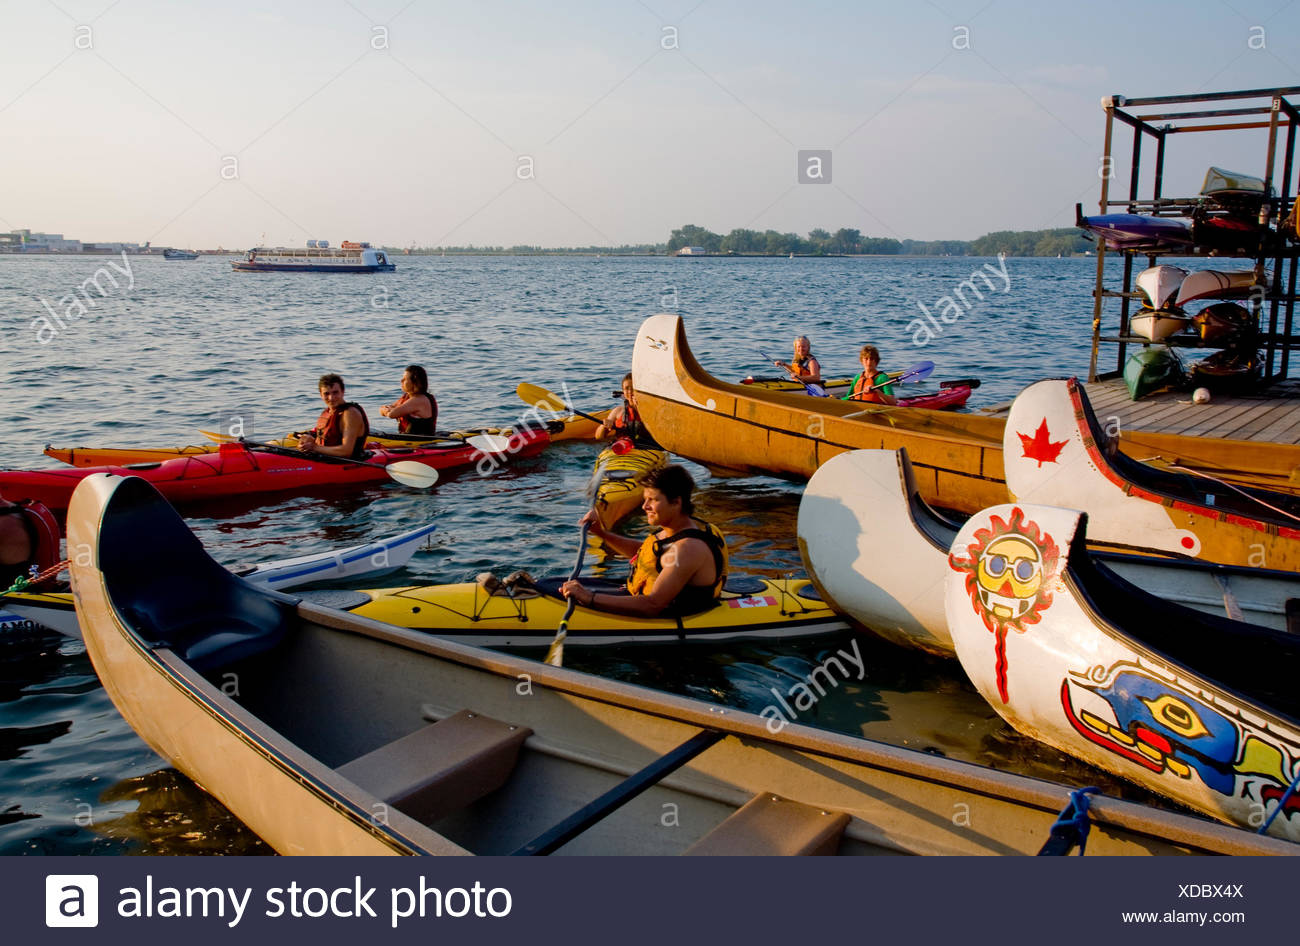 Boaters at Harbourfront Kayak Centre in Toronto. - Stock Image